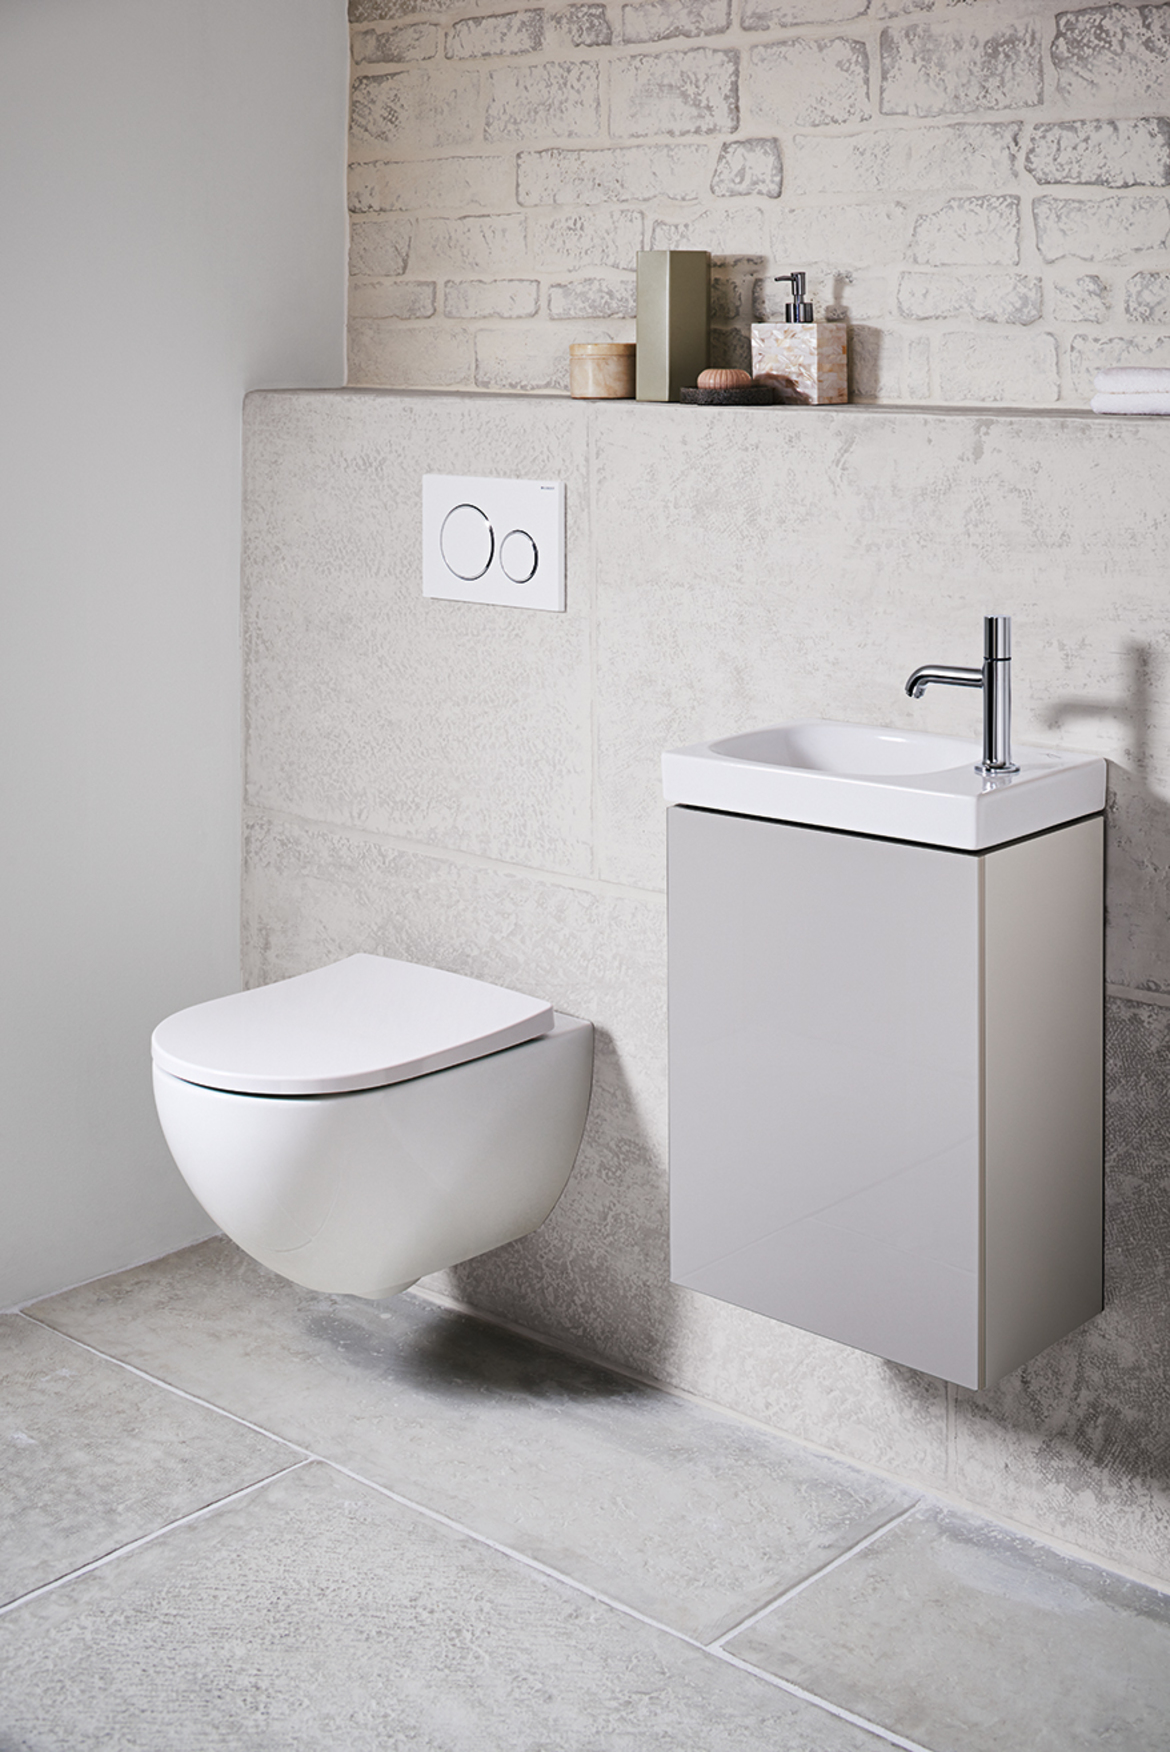 Was Ist Ein Bidet in wall toilet tank systems for wall hung toilets geberit